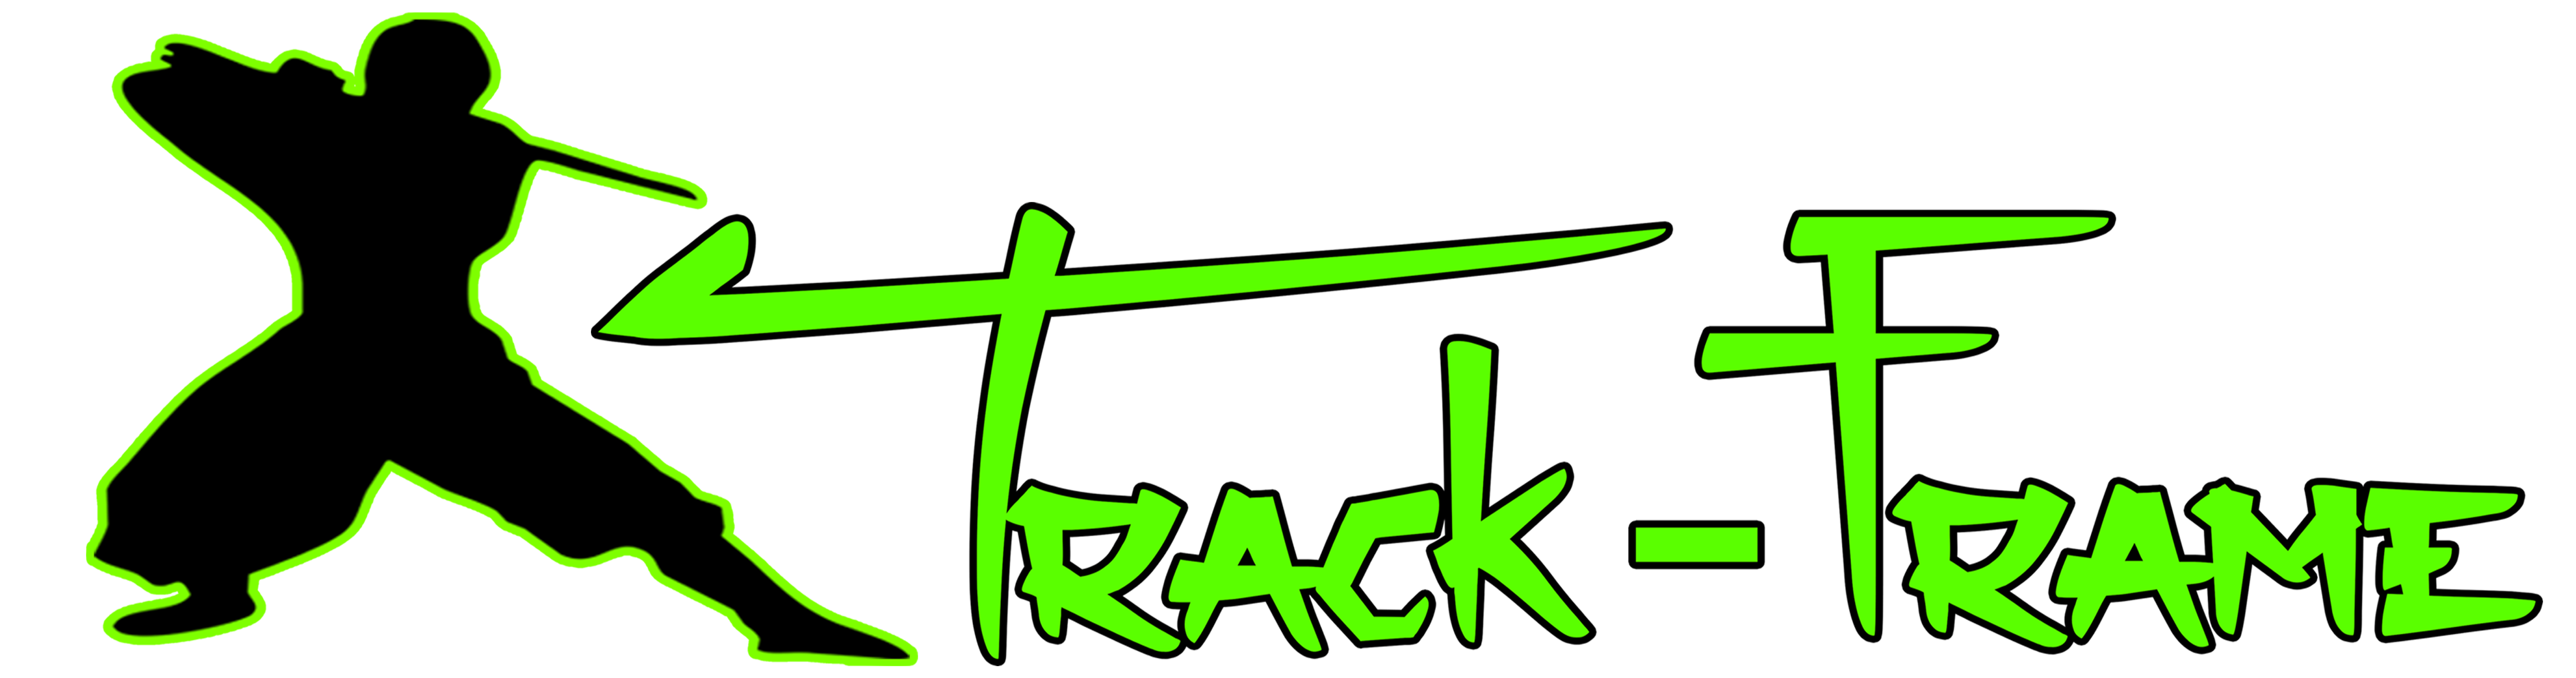 Track Frame - MotorSport Specialist - Car Accessories